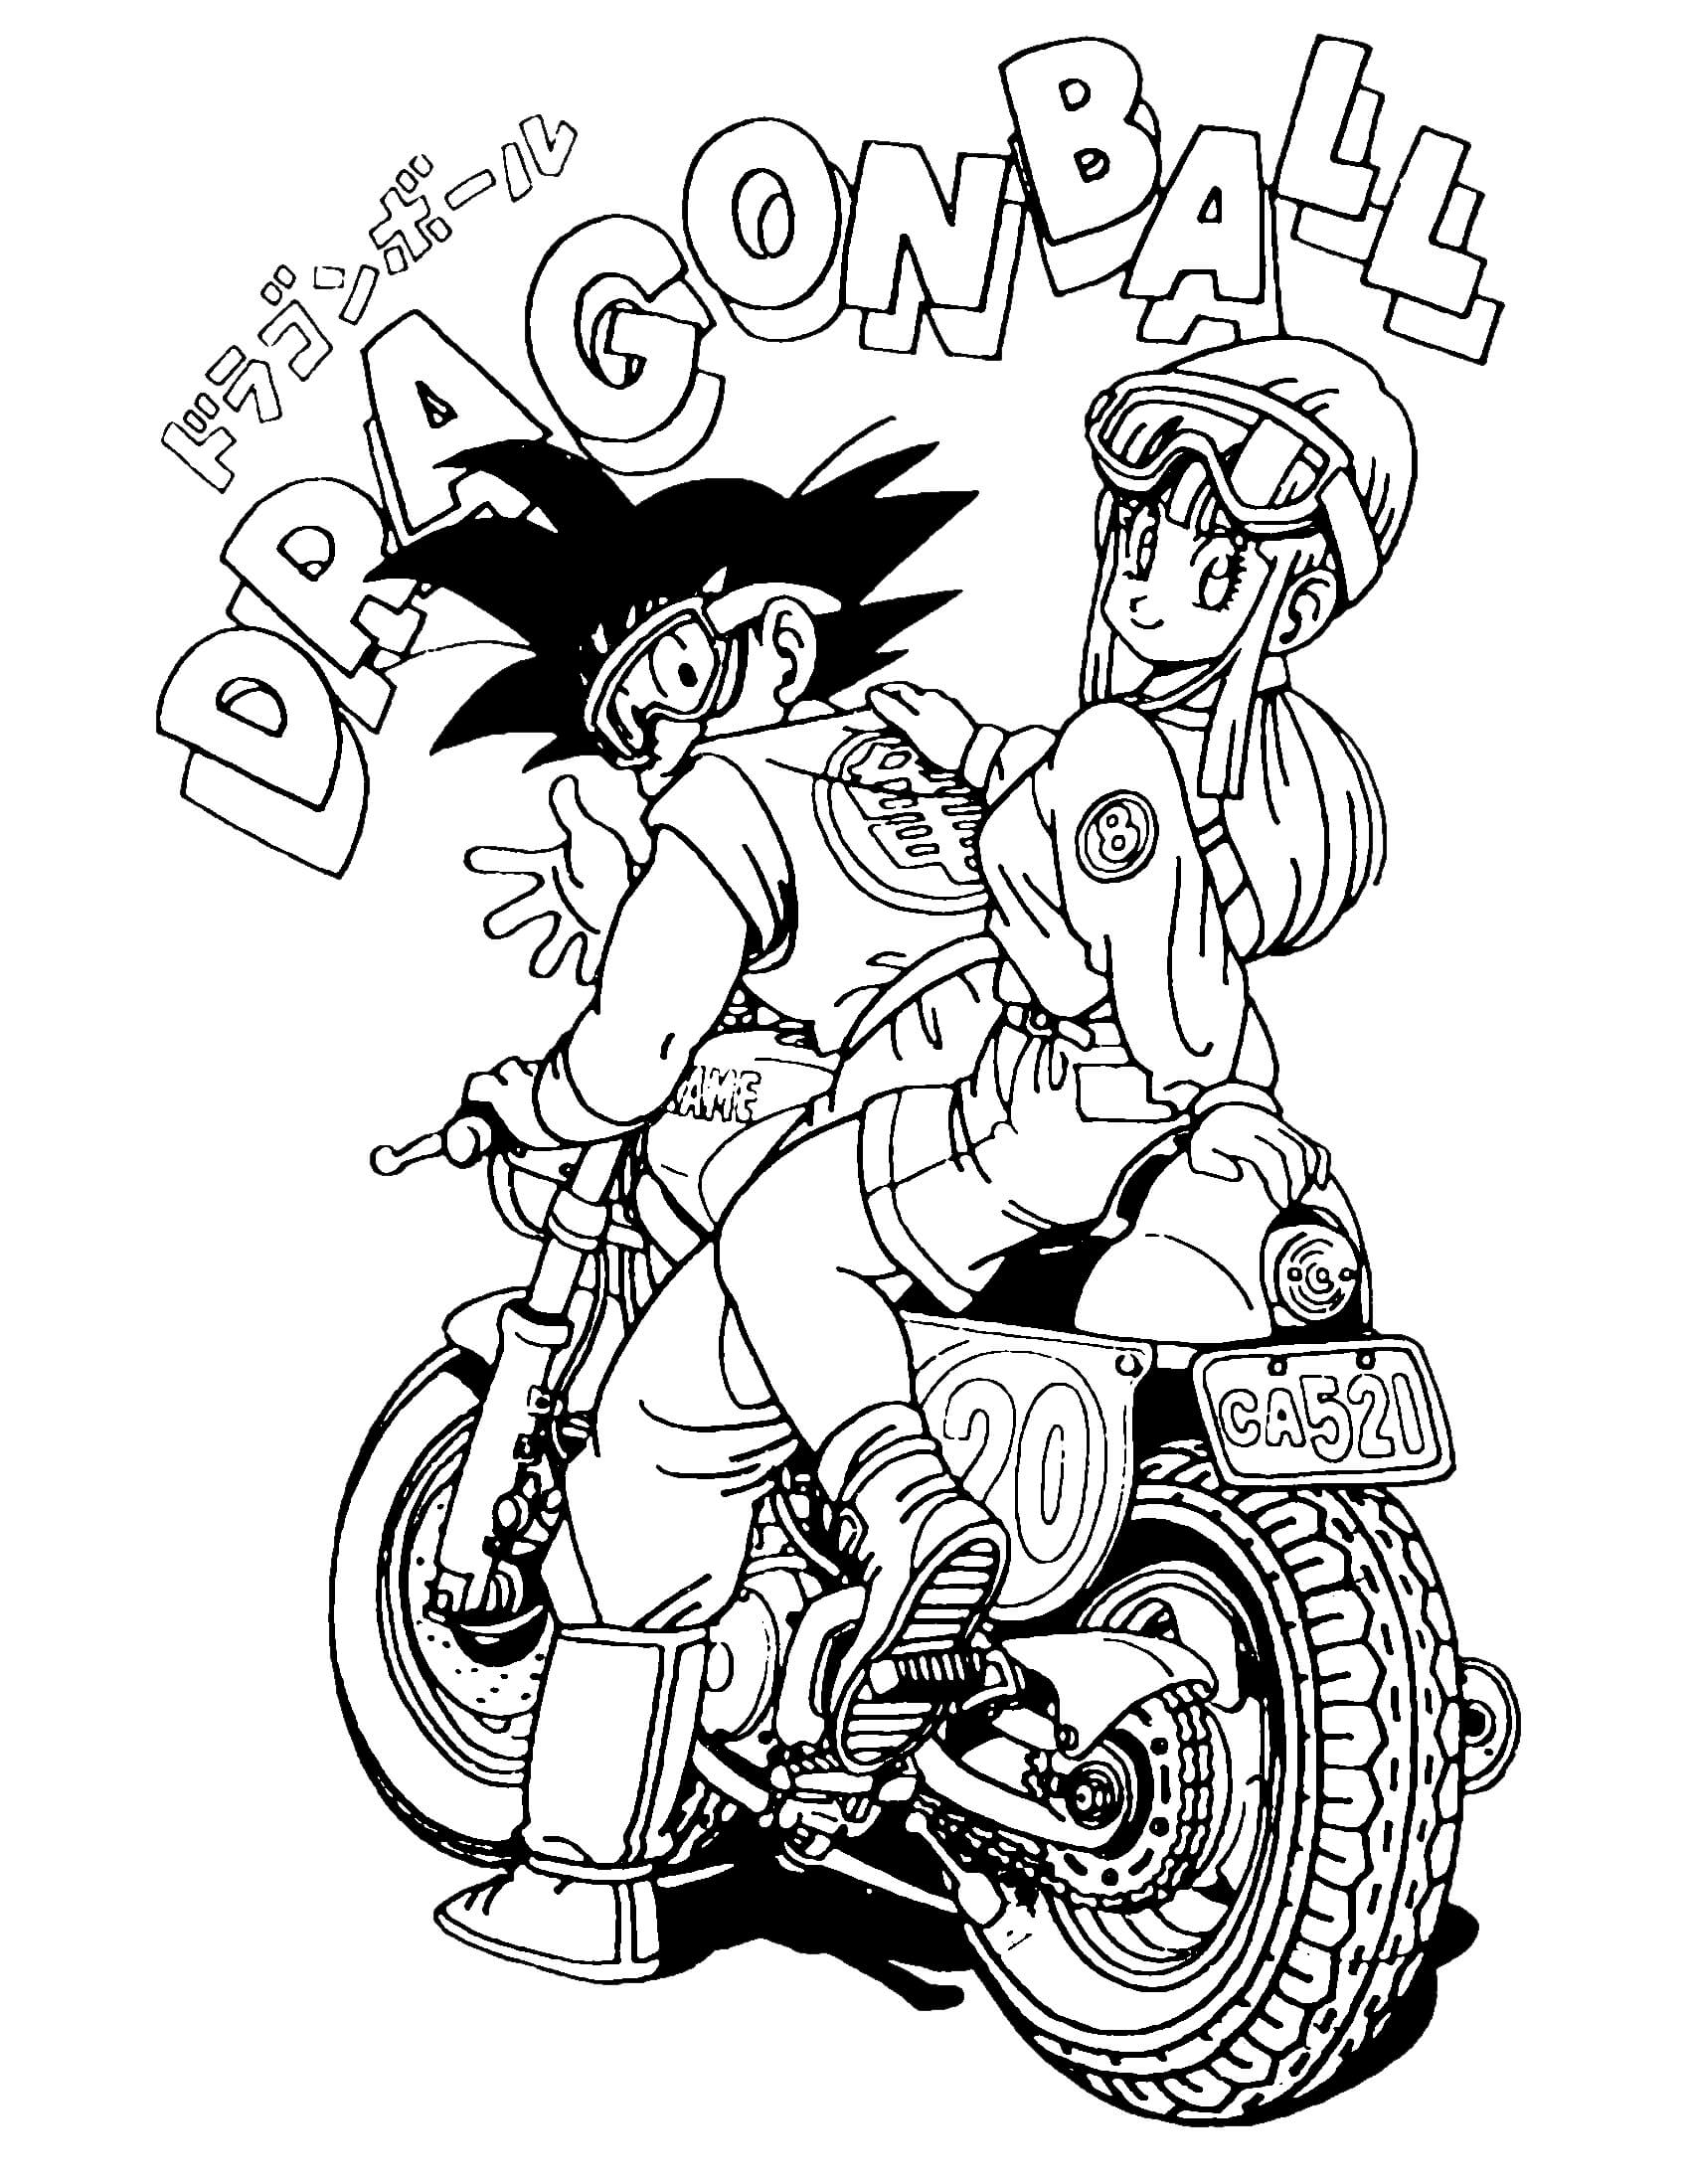 Dragon ball coloring pages best coloring pages for kids for Dbz coloring pages online